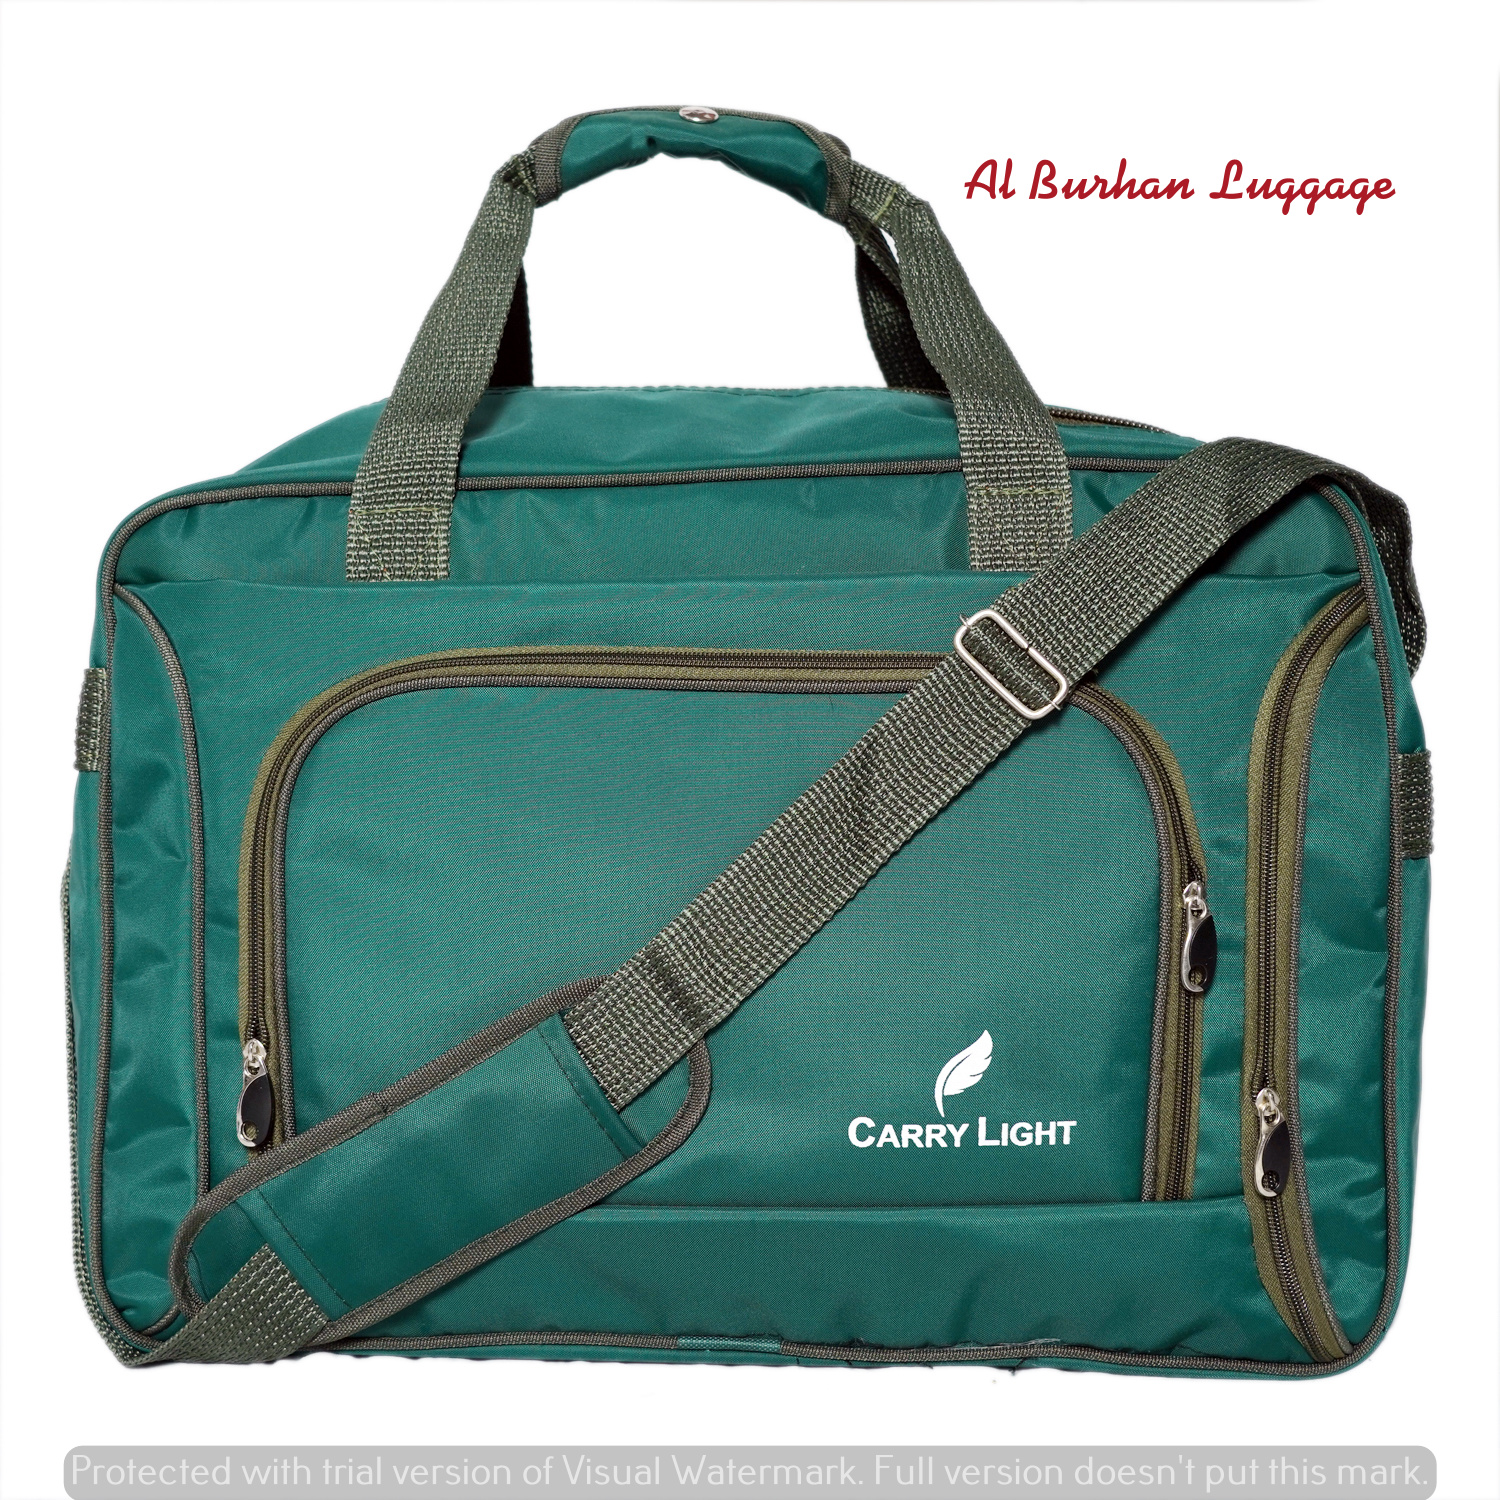 CARRY LIGHT Outdoor Waterproof Nylon Rubber Sports Gym Bags, Men Women Training Fitness Travel Handbag, Sport Bag with shoes Compartment,Outdoor Travel Sport Bag Multifunction - GREEN